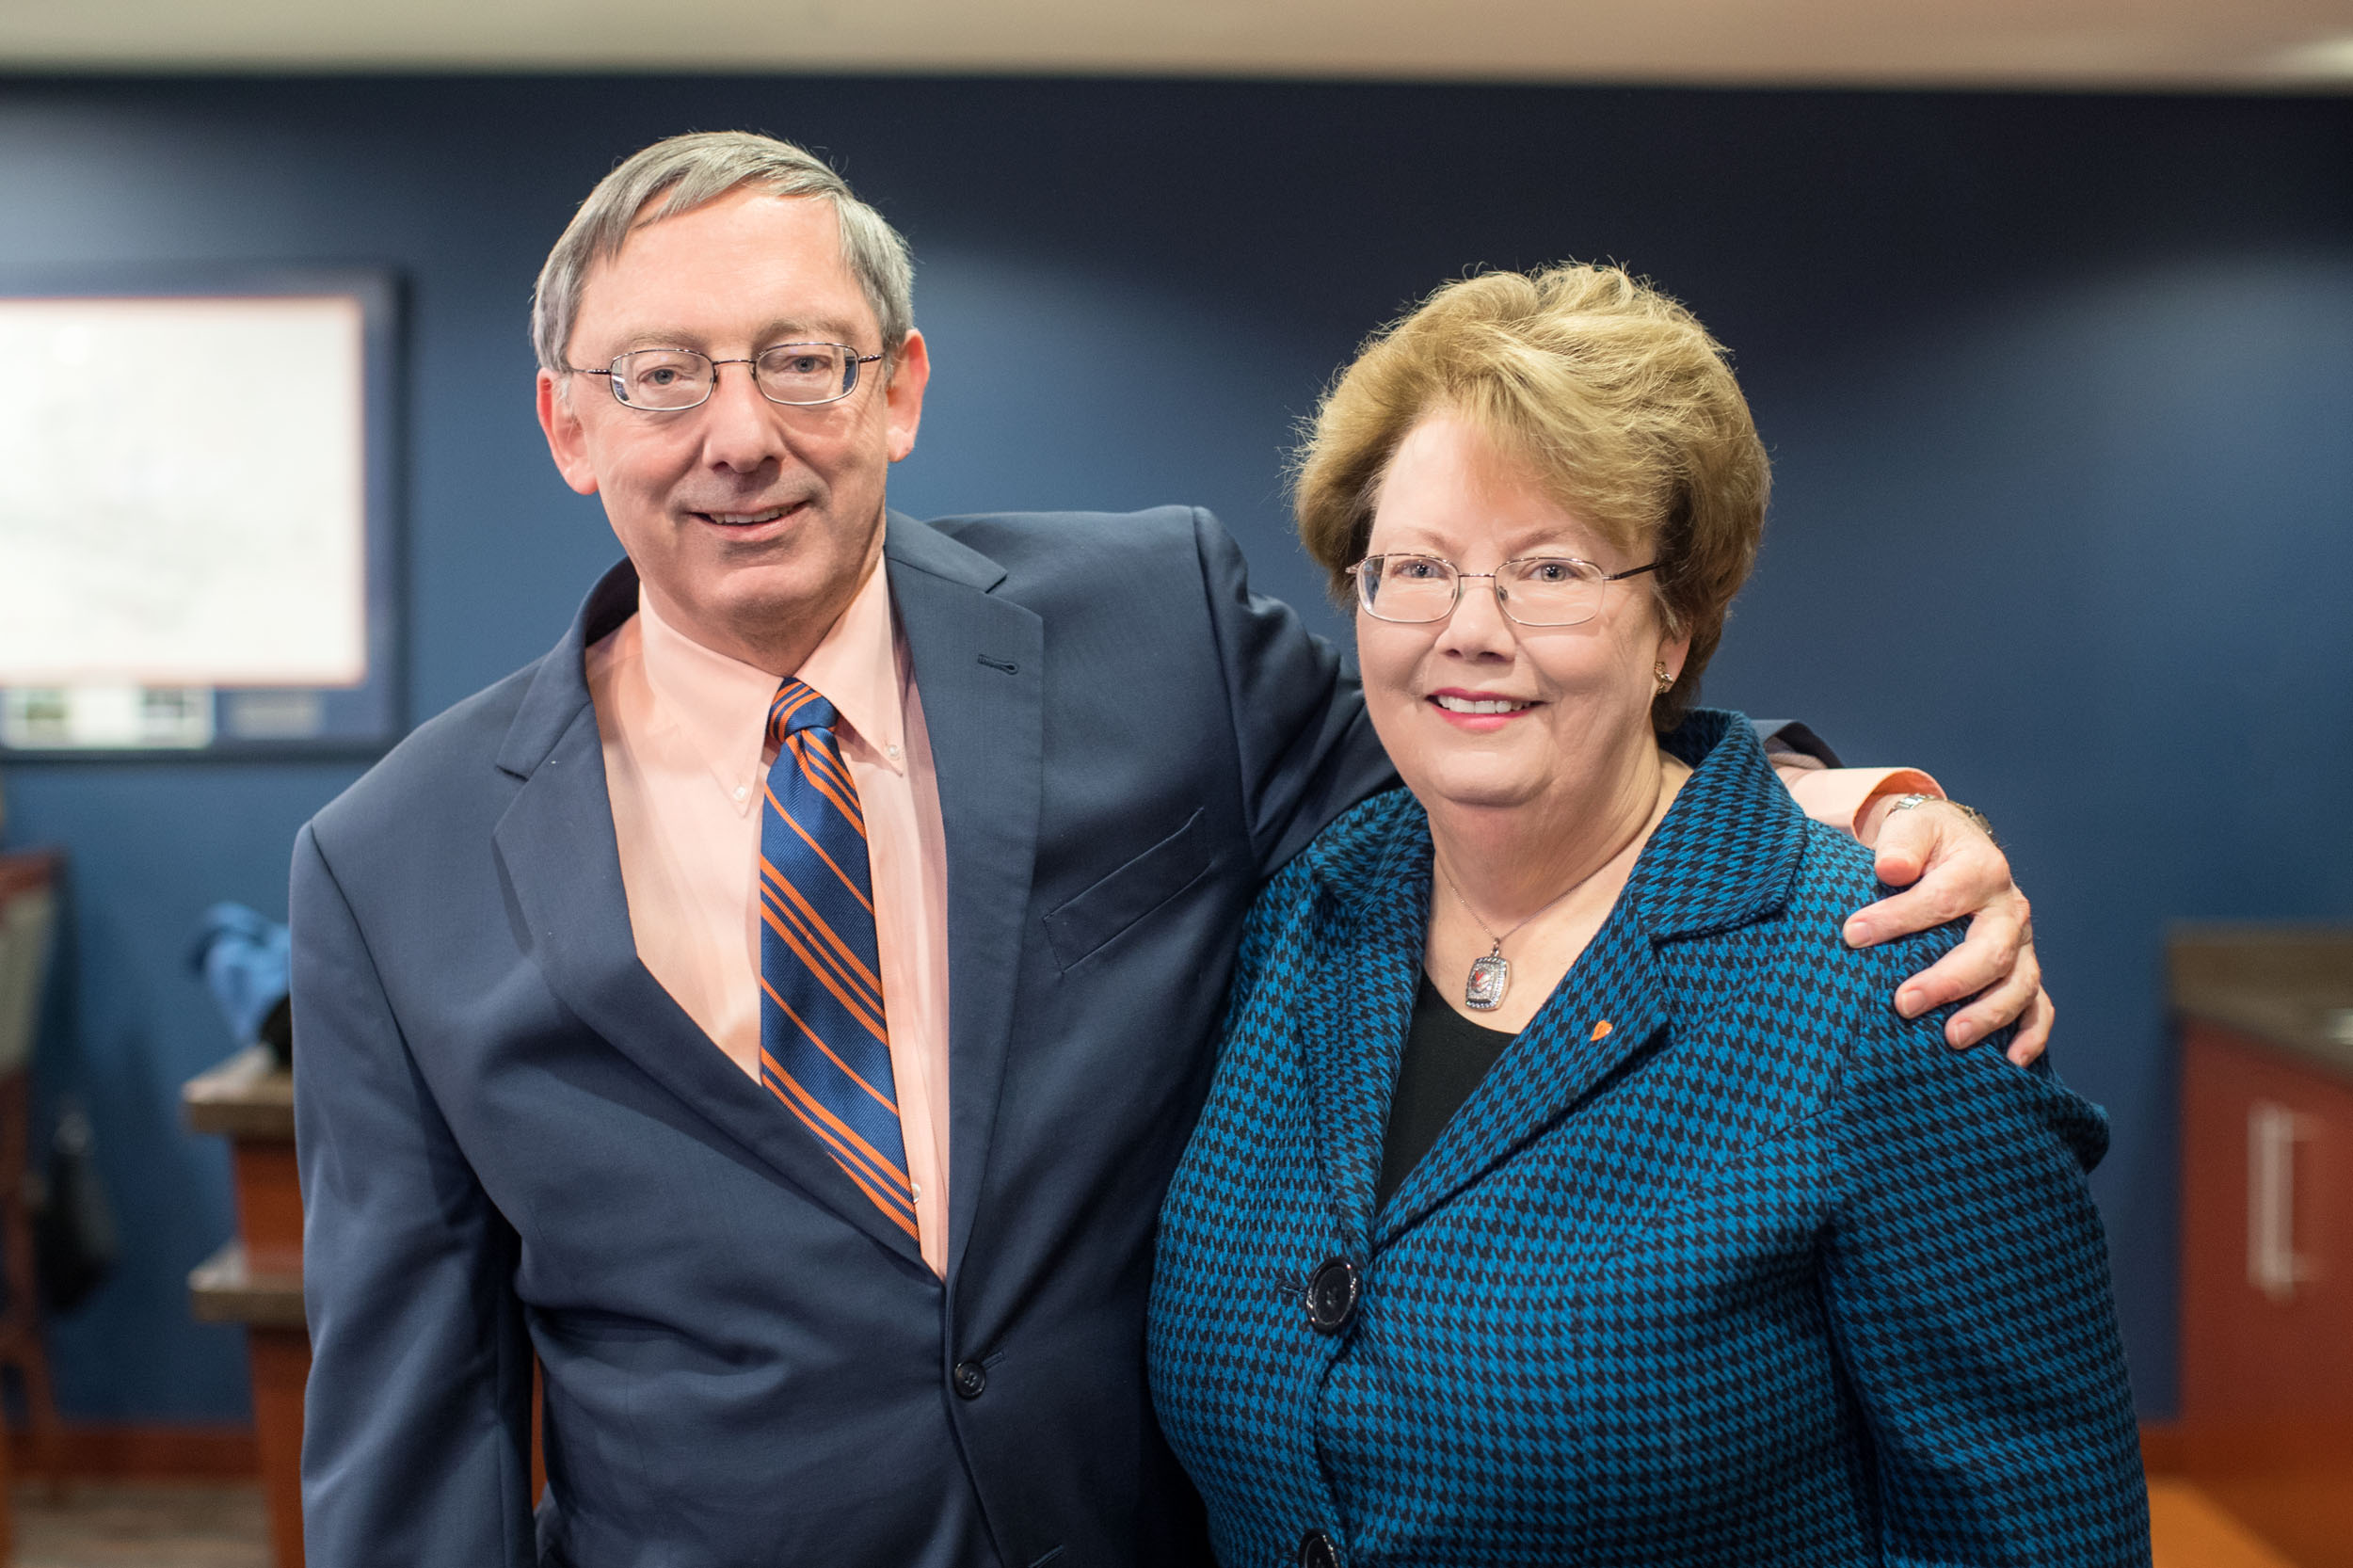 UVA President Teresa A. Sullivan and her husband, law professor Douglas Laycock, have contributed hundreds of thousands of dollars toward educational and extracurricular activities.